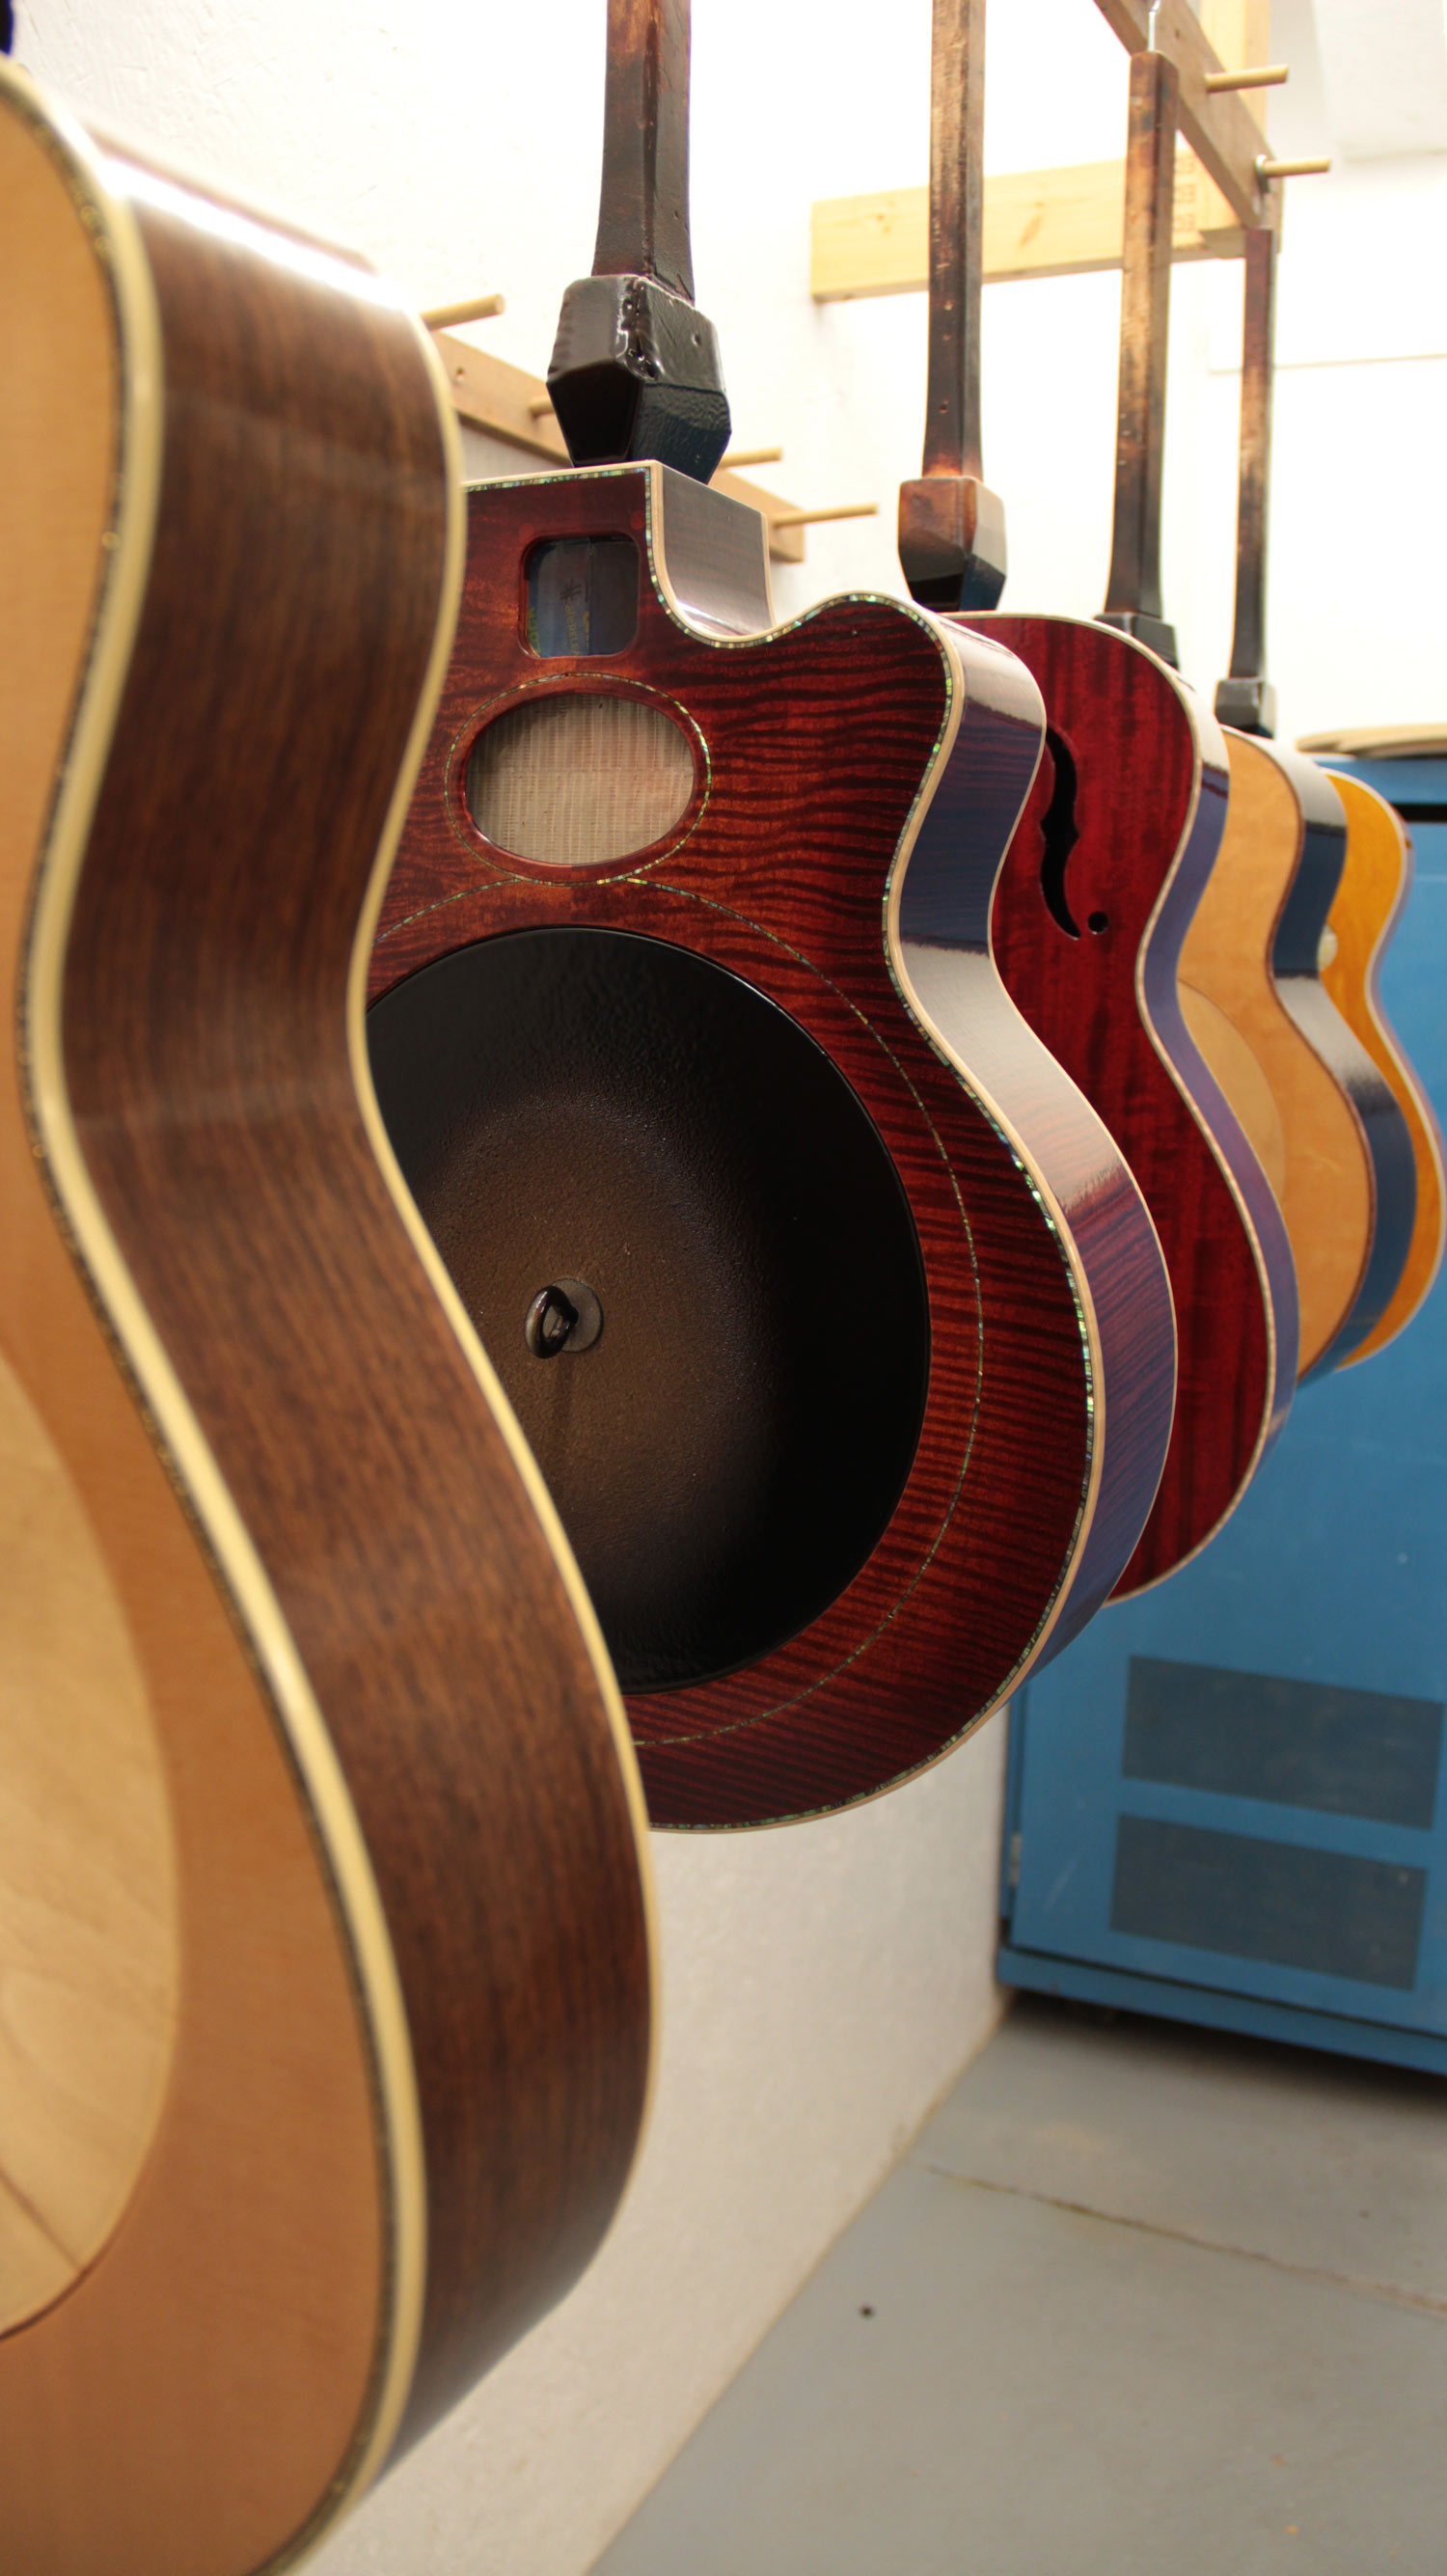 Guitars in finishing